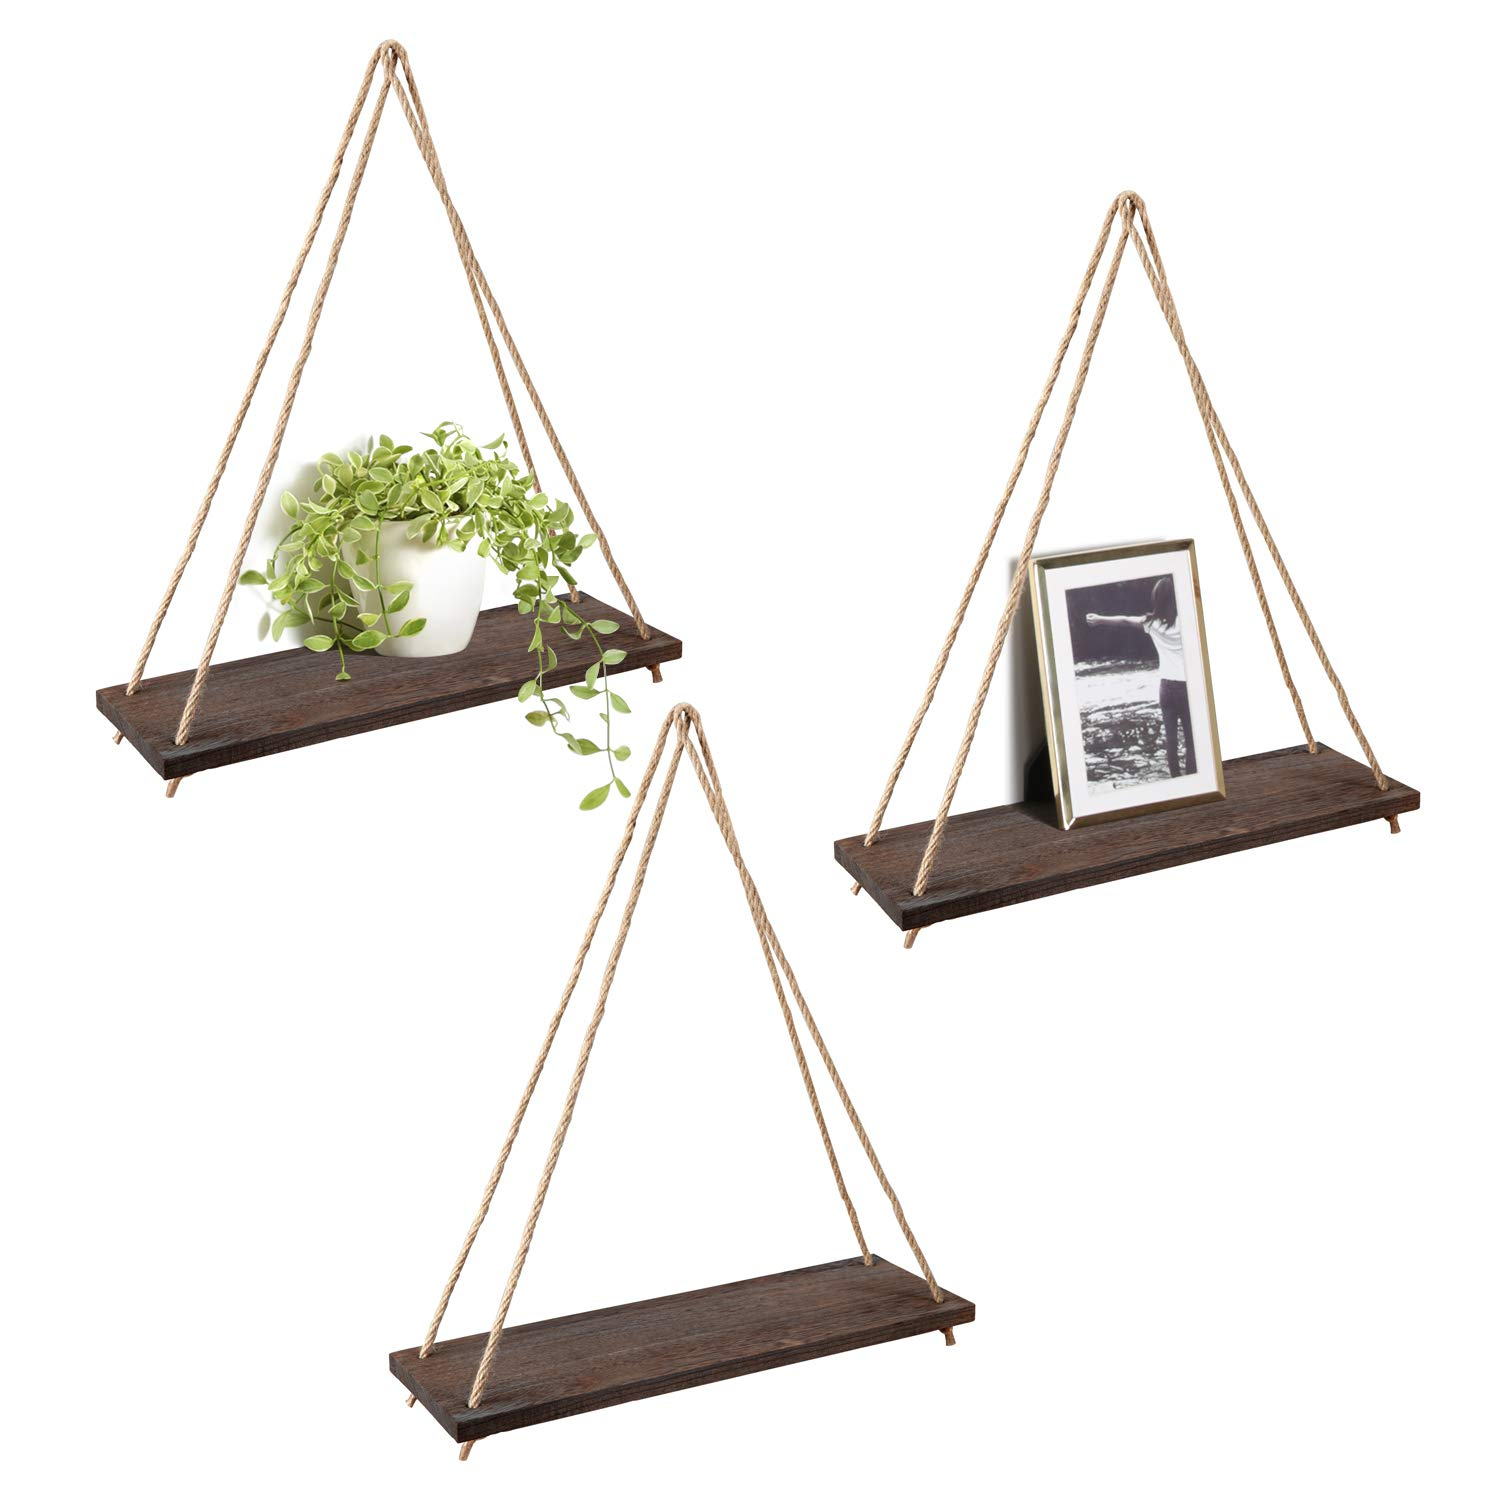 Mkono Wood Wall Floating Shelf Rustic Hanging Swing Rope Shelves, Set of 3 Wall Display Shelves Home Organizer Boho Decor Shelves for Living Room Bedroom Bathroom Kitchen by Mkono